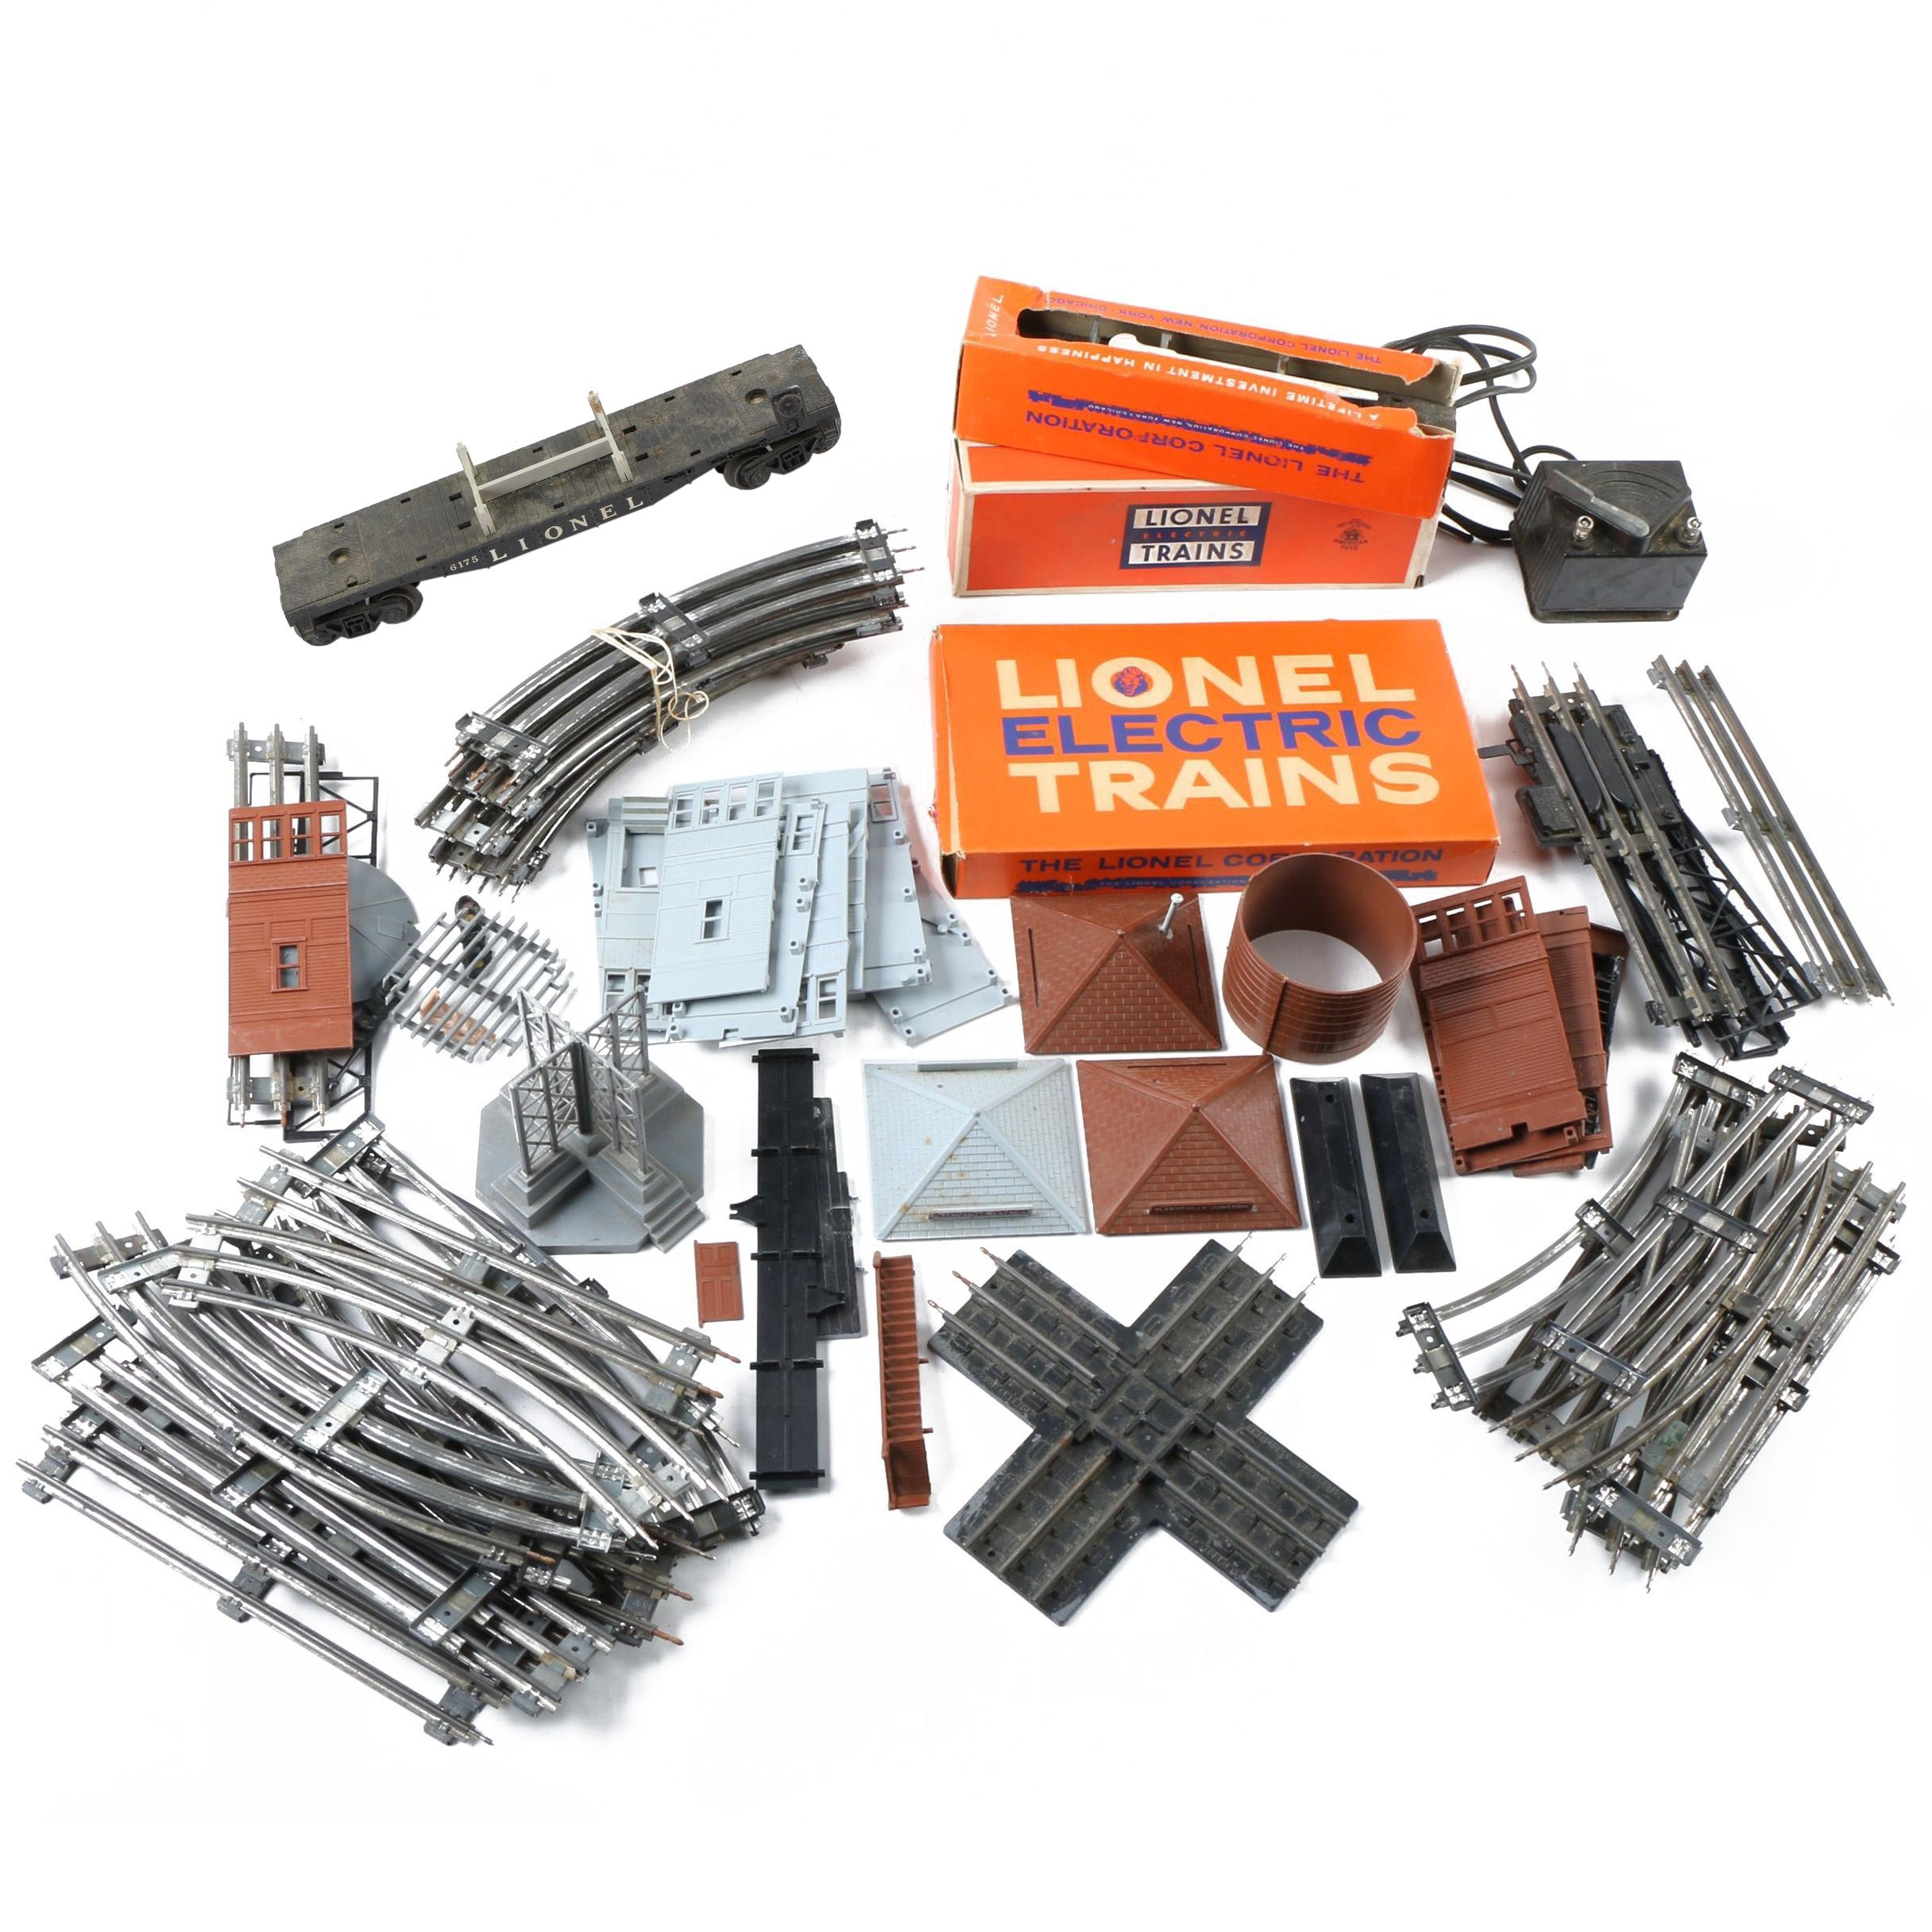 Lionel Train Accessories Including U.S. Navy Rocket